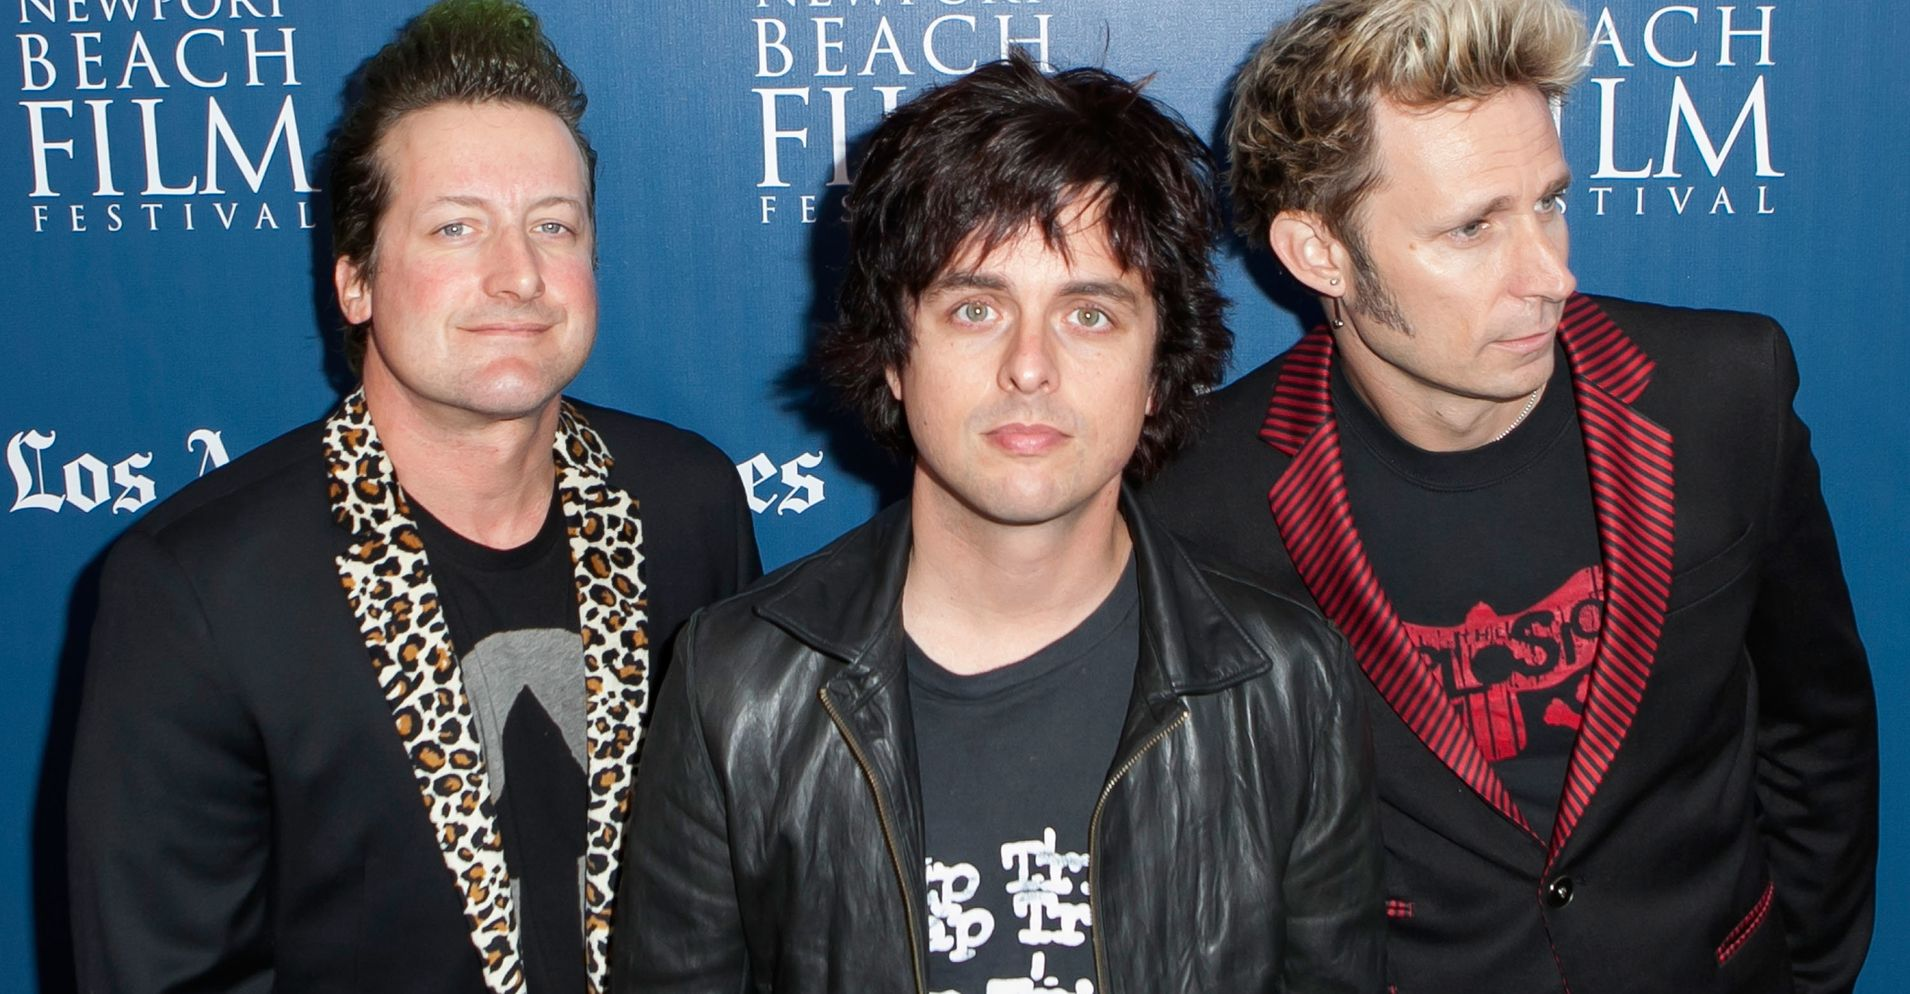 Greenday's 'American Idiot' Is Topping UK Charts Upon Trump's Visit